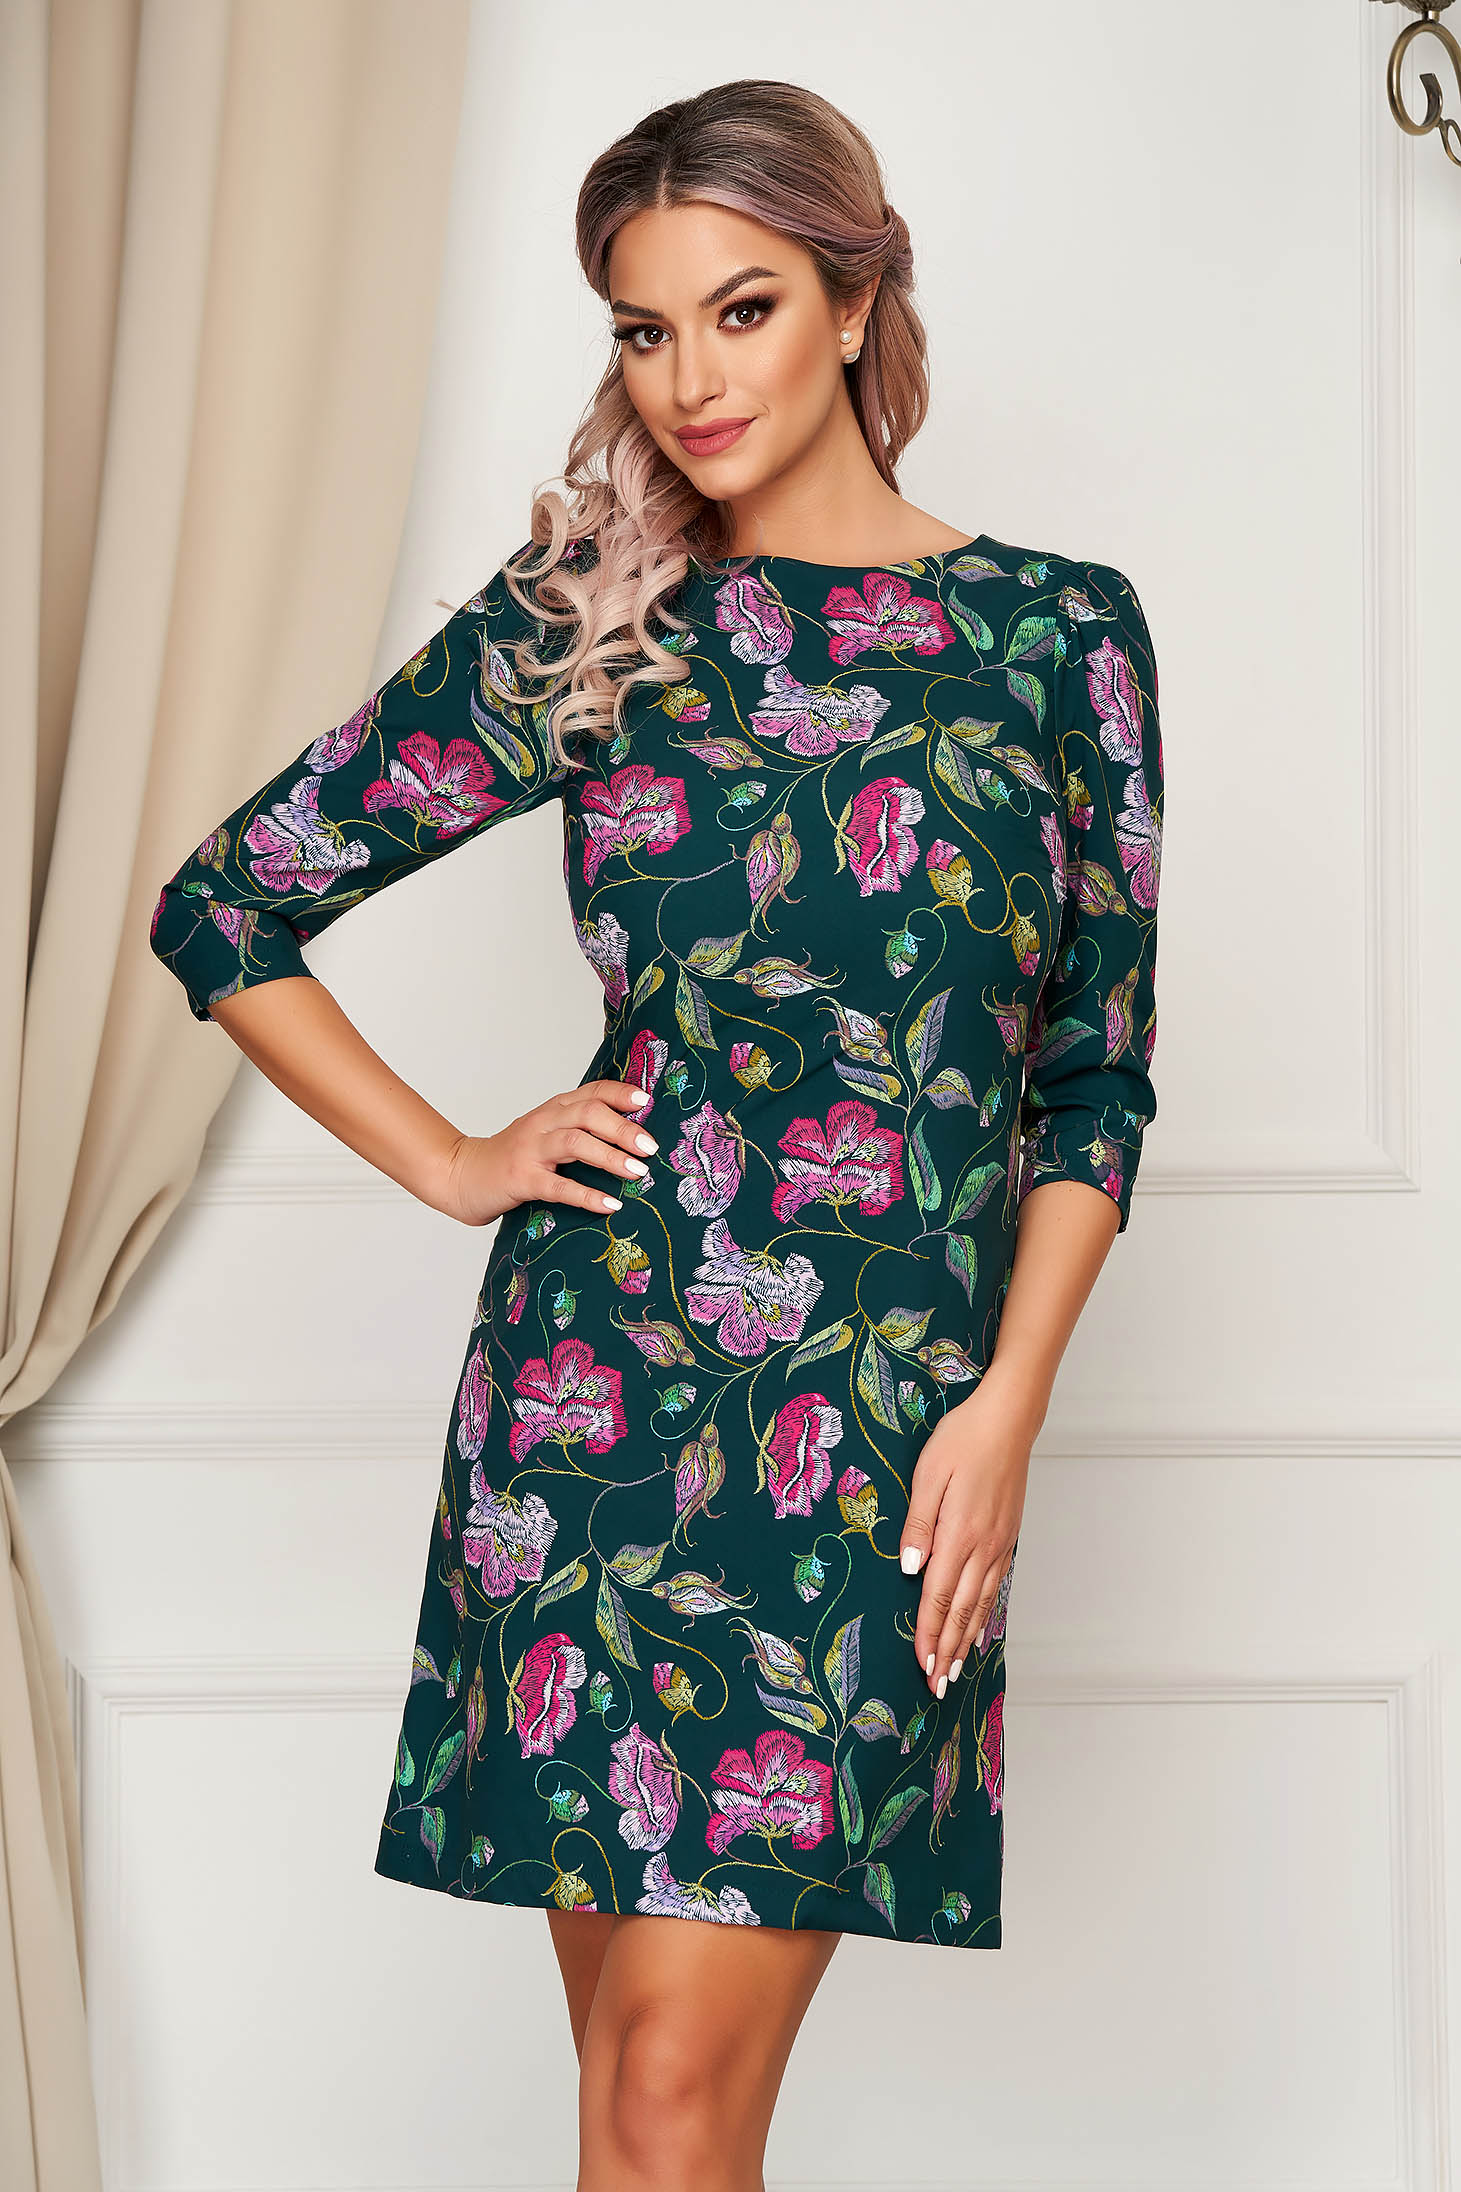 StarShinerS green dress elegant short cut straight slightly elastic fabric with floral prints